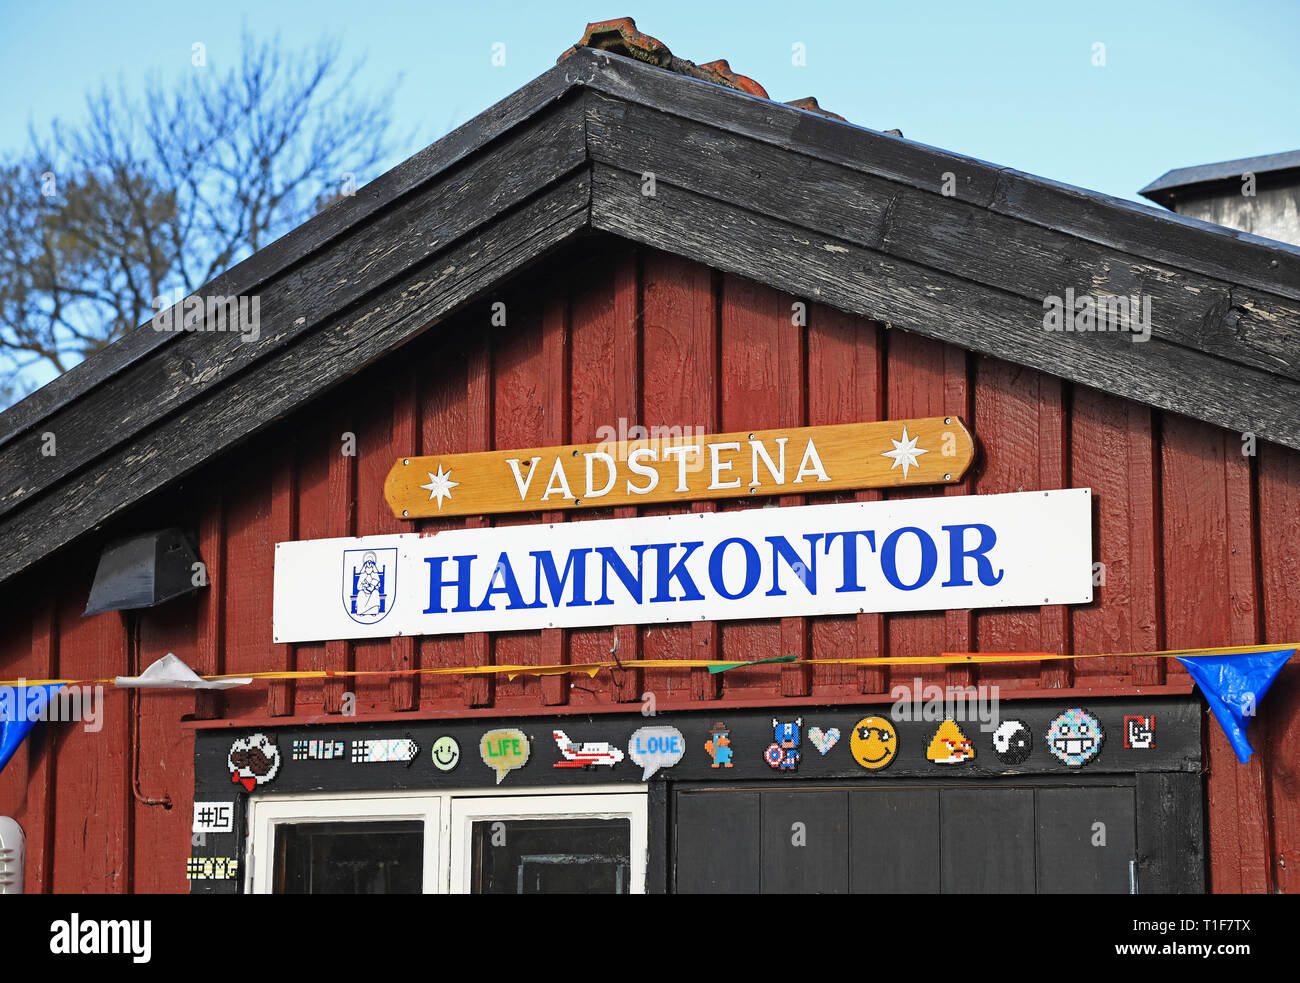 VADSTENA 20171013 A harbor office in the port of Vadstena. Photo Jeppe Gustafsson - Stock Image